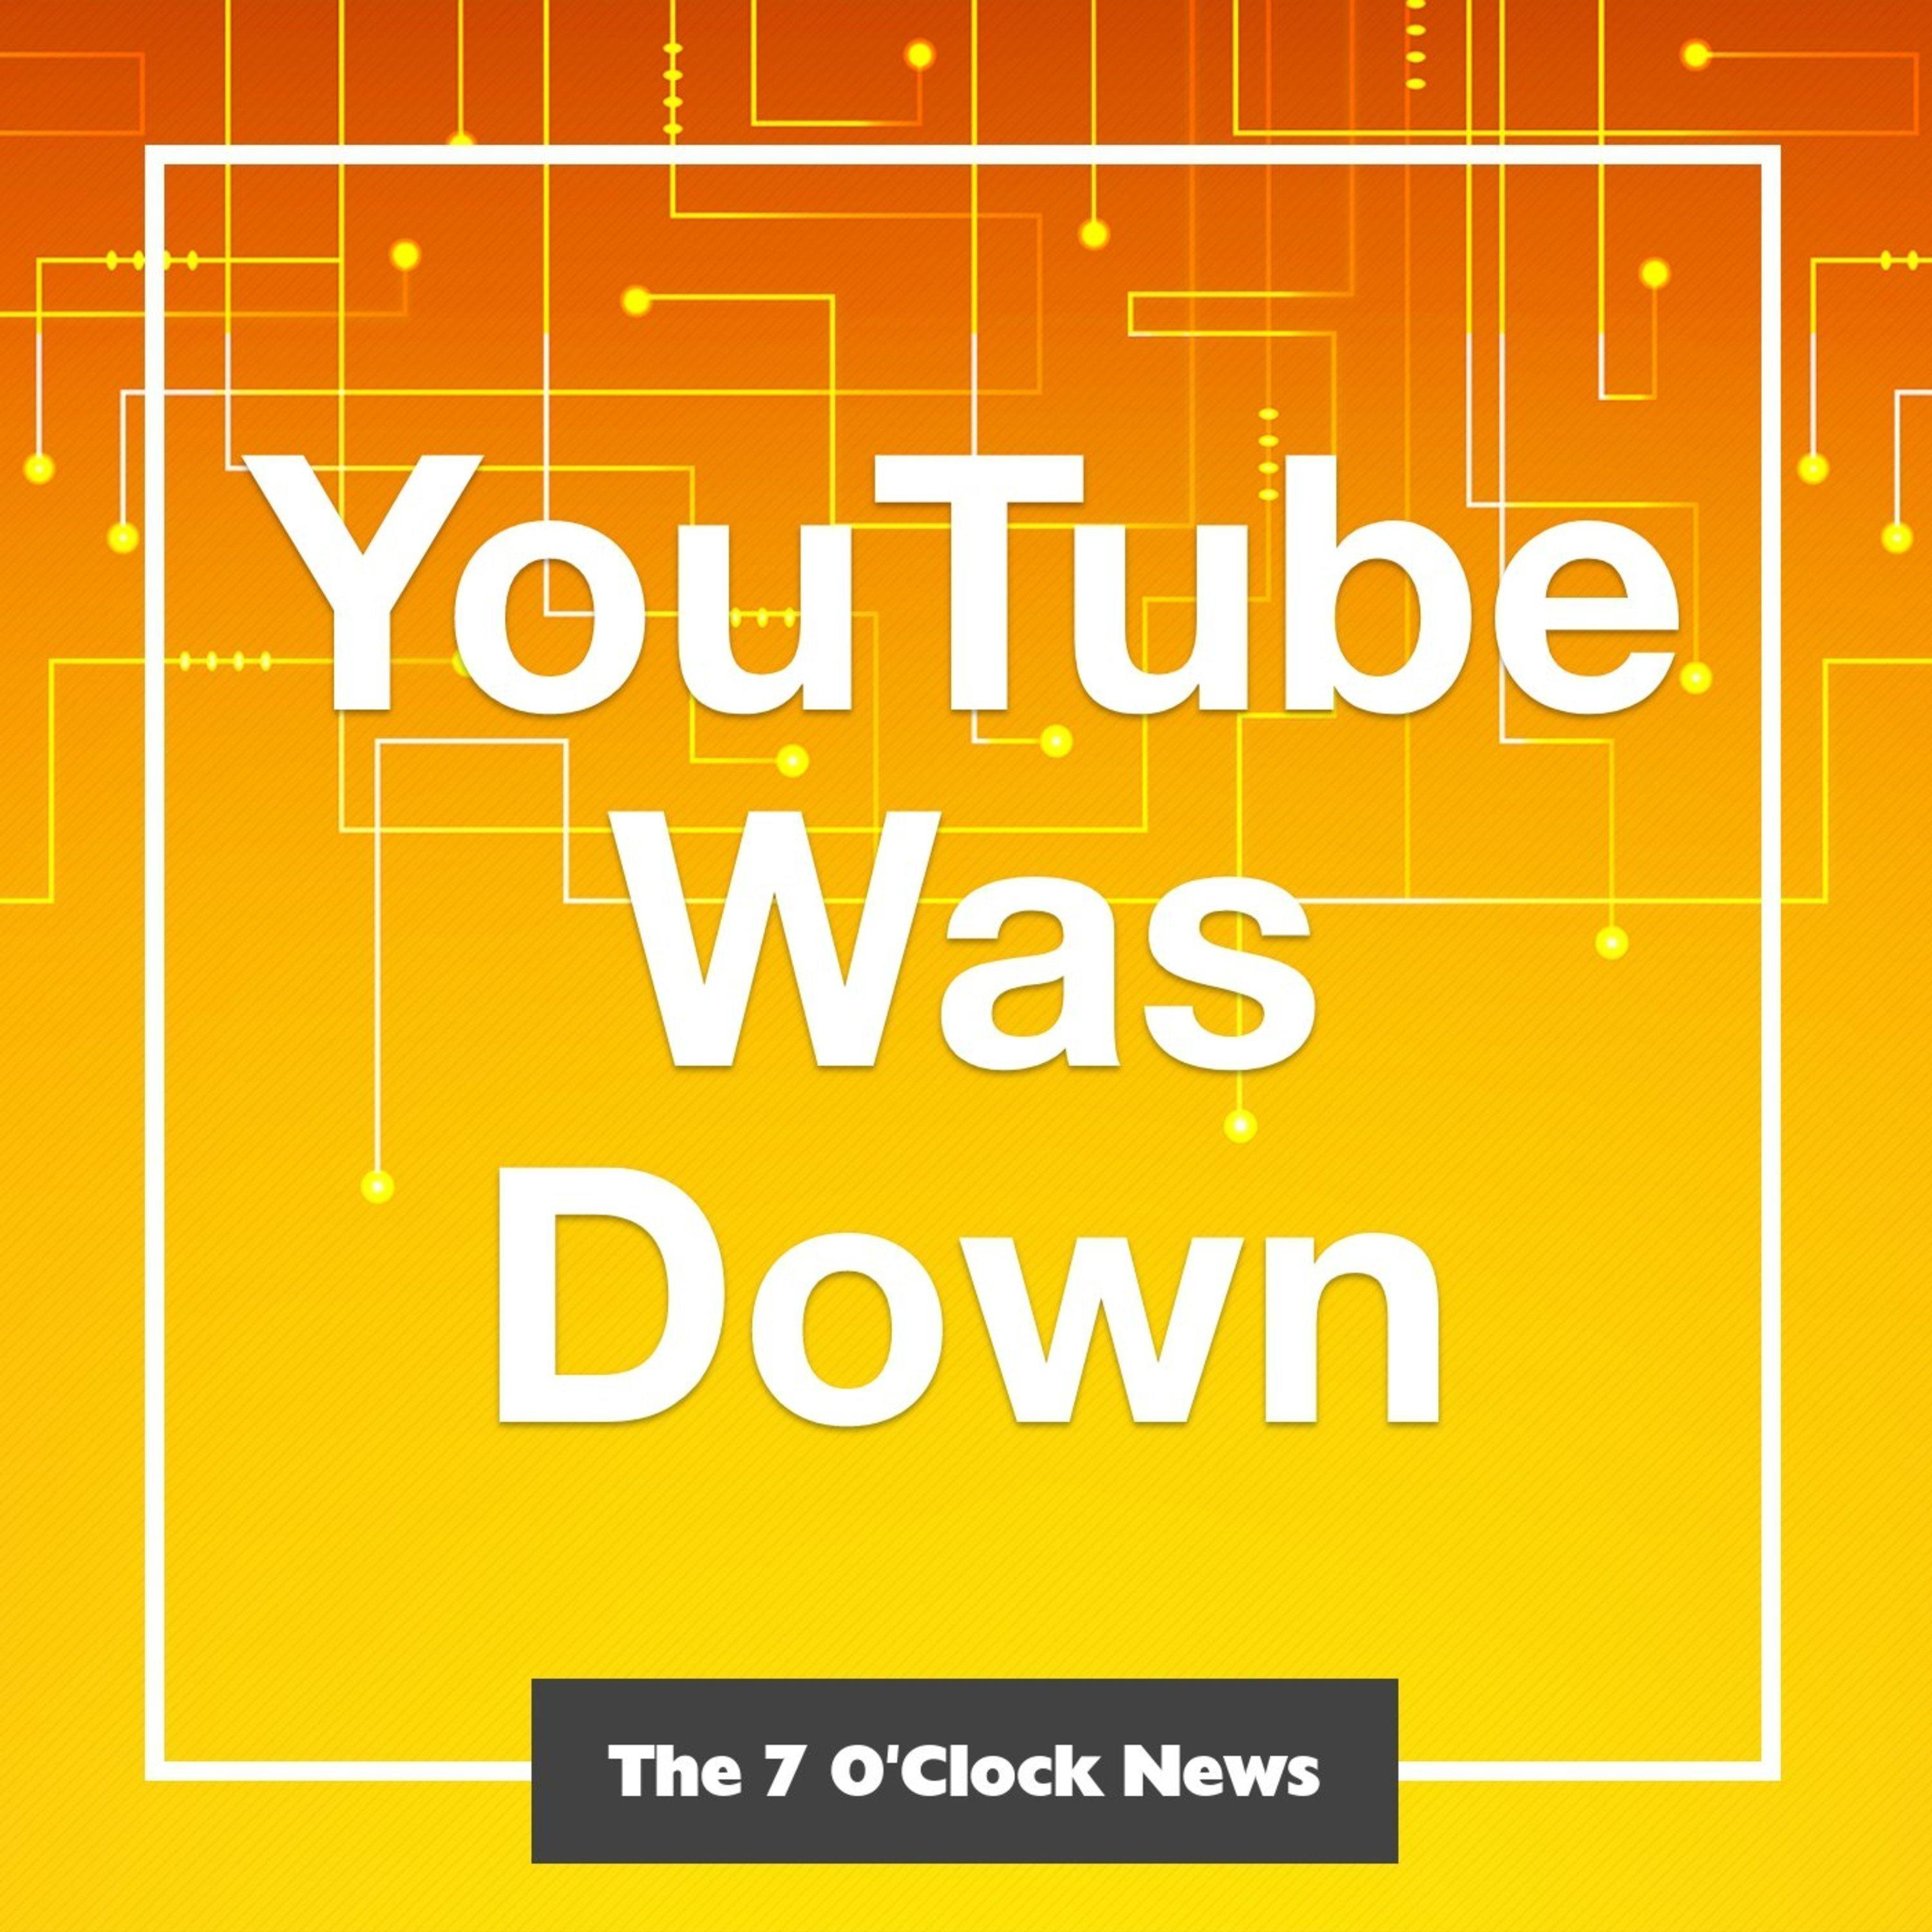 YouTube Was Down